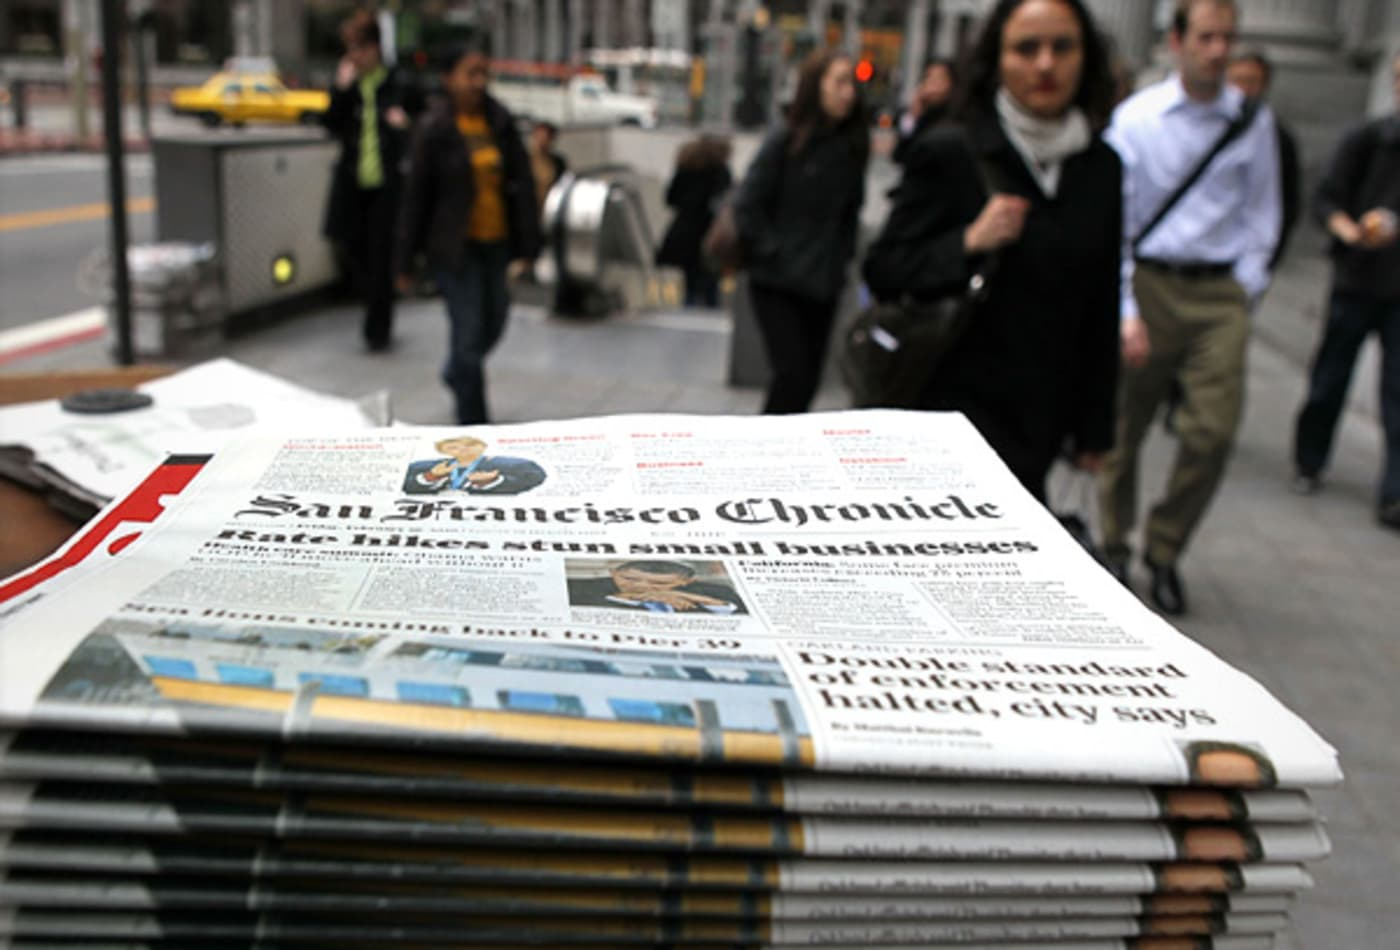 Newspapers-Industries-Hit-Hardest-Recession-CNBC.jpg